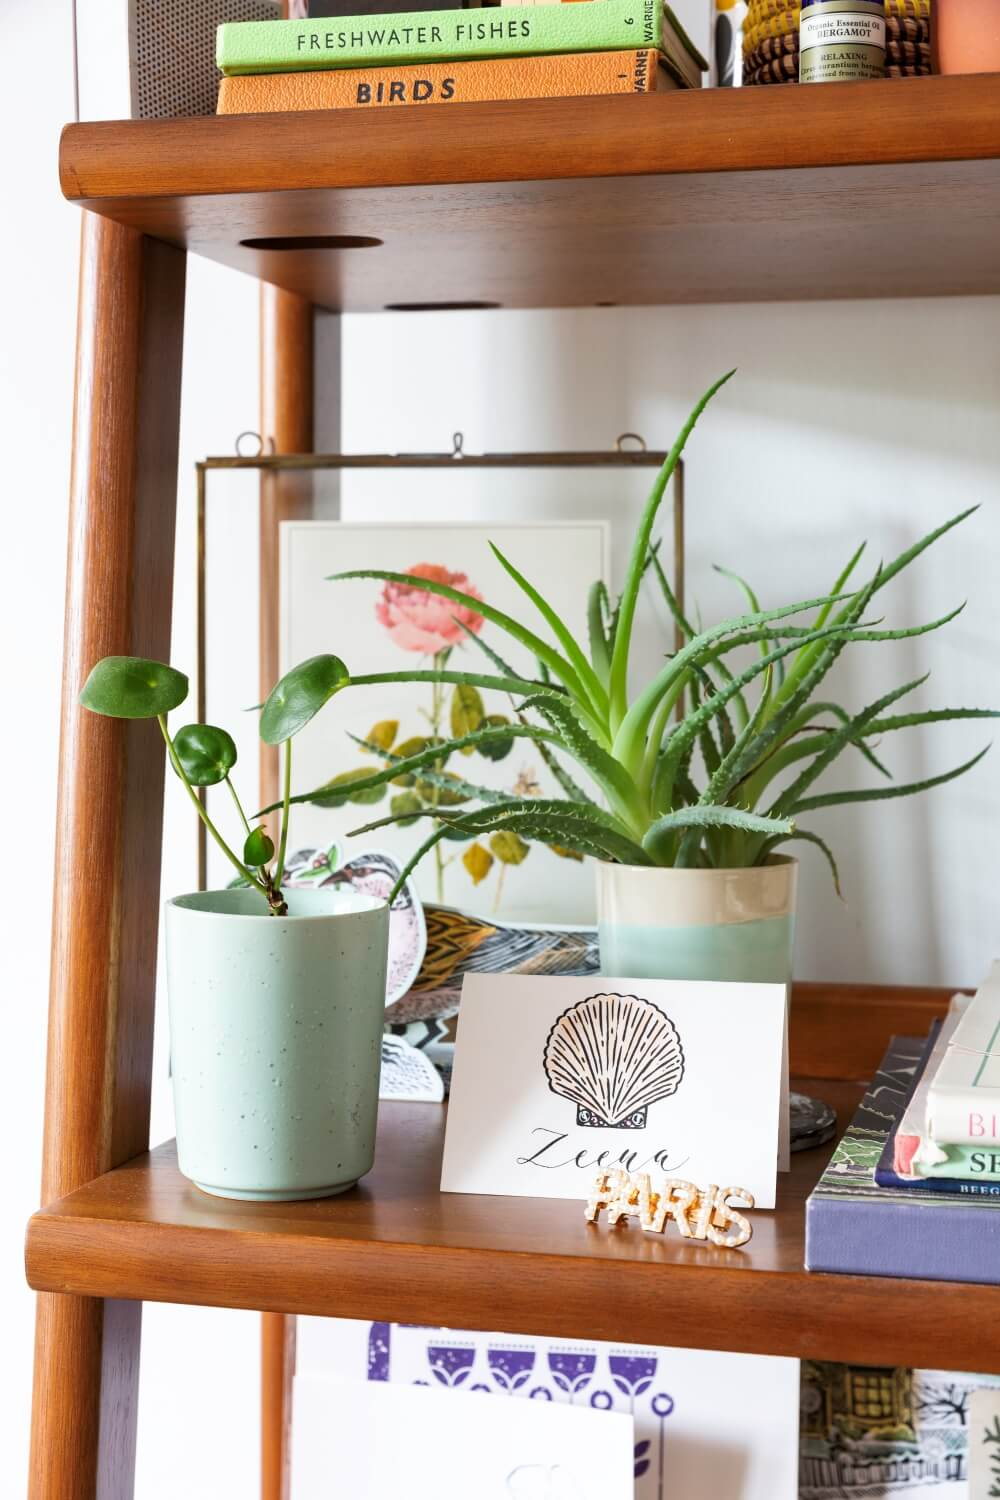 A close up of decorative items on west elm shelf. Items include indoor plants, and books